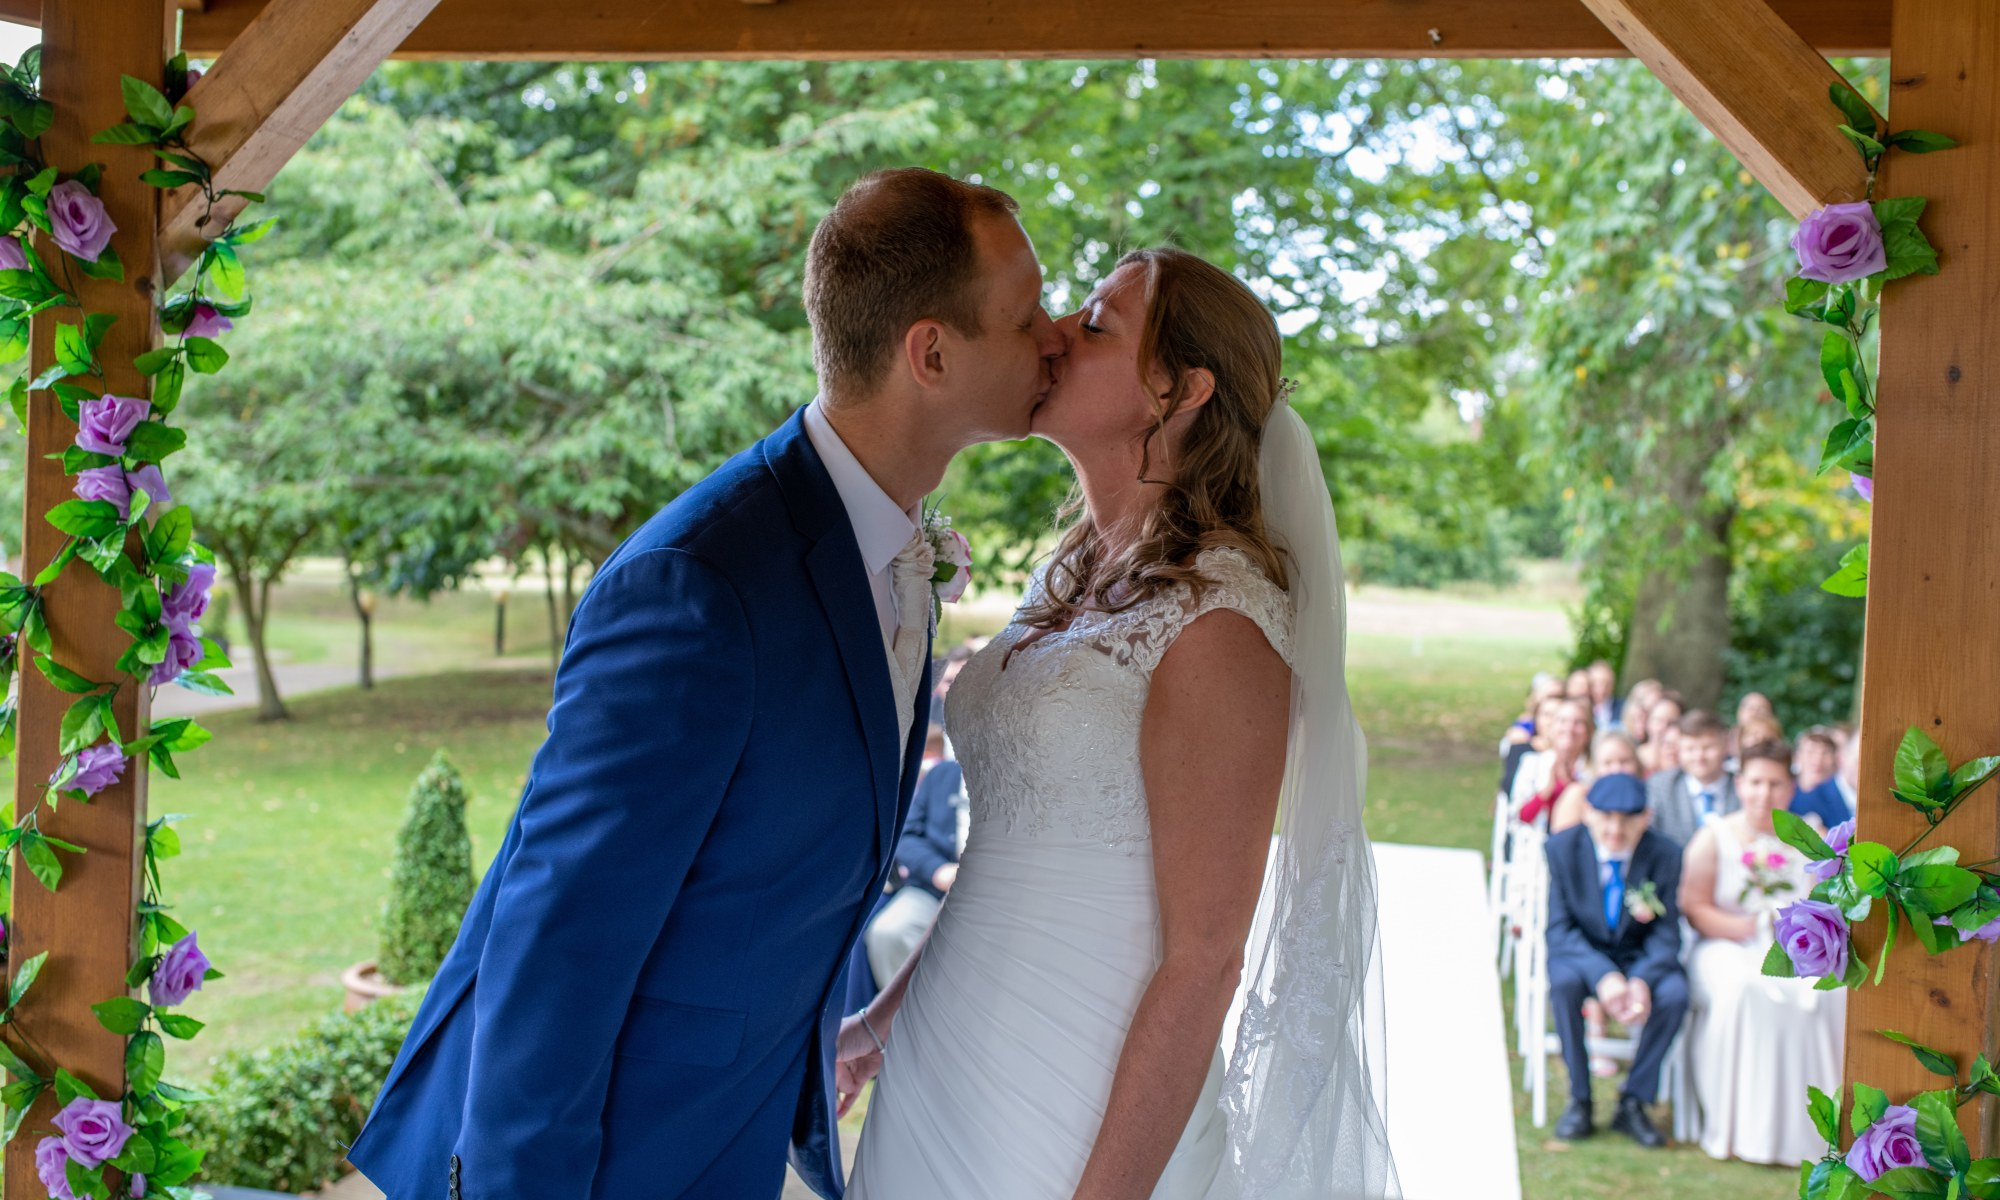 Tudor Park Marriott Hotel & Country Club in Maidstone , Kent - Frank and Stephs first kiss as the new Mr & Mrs Andrews